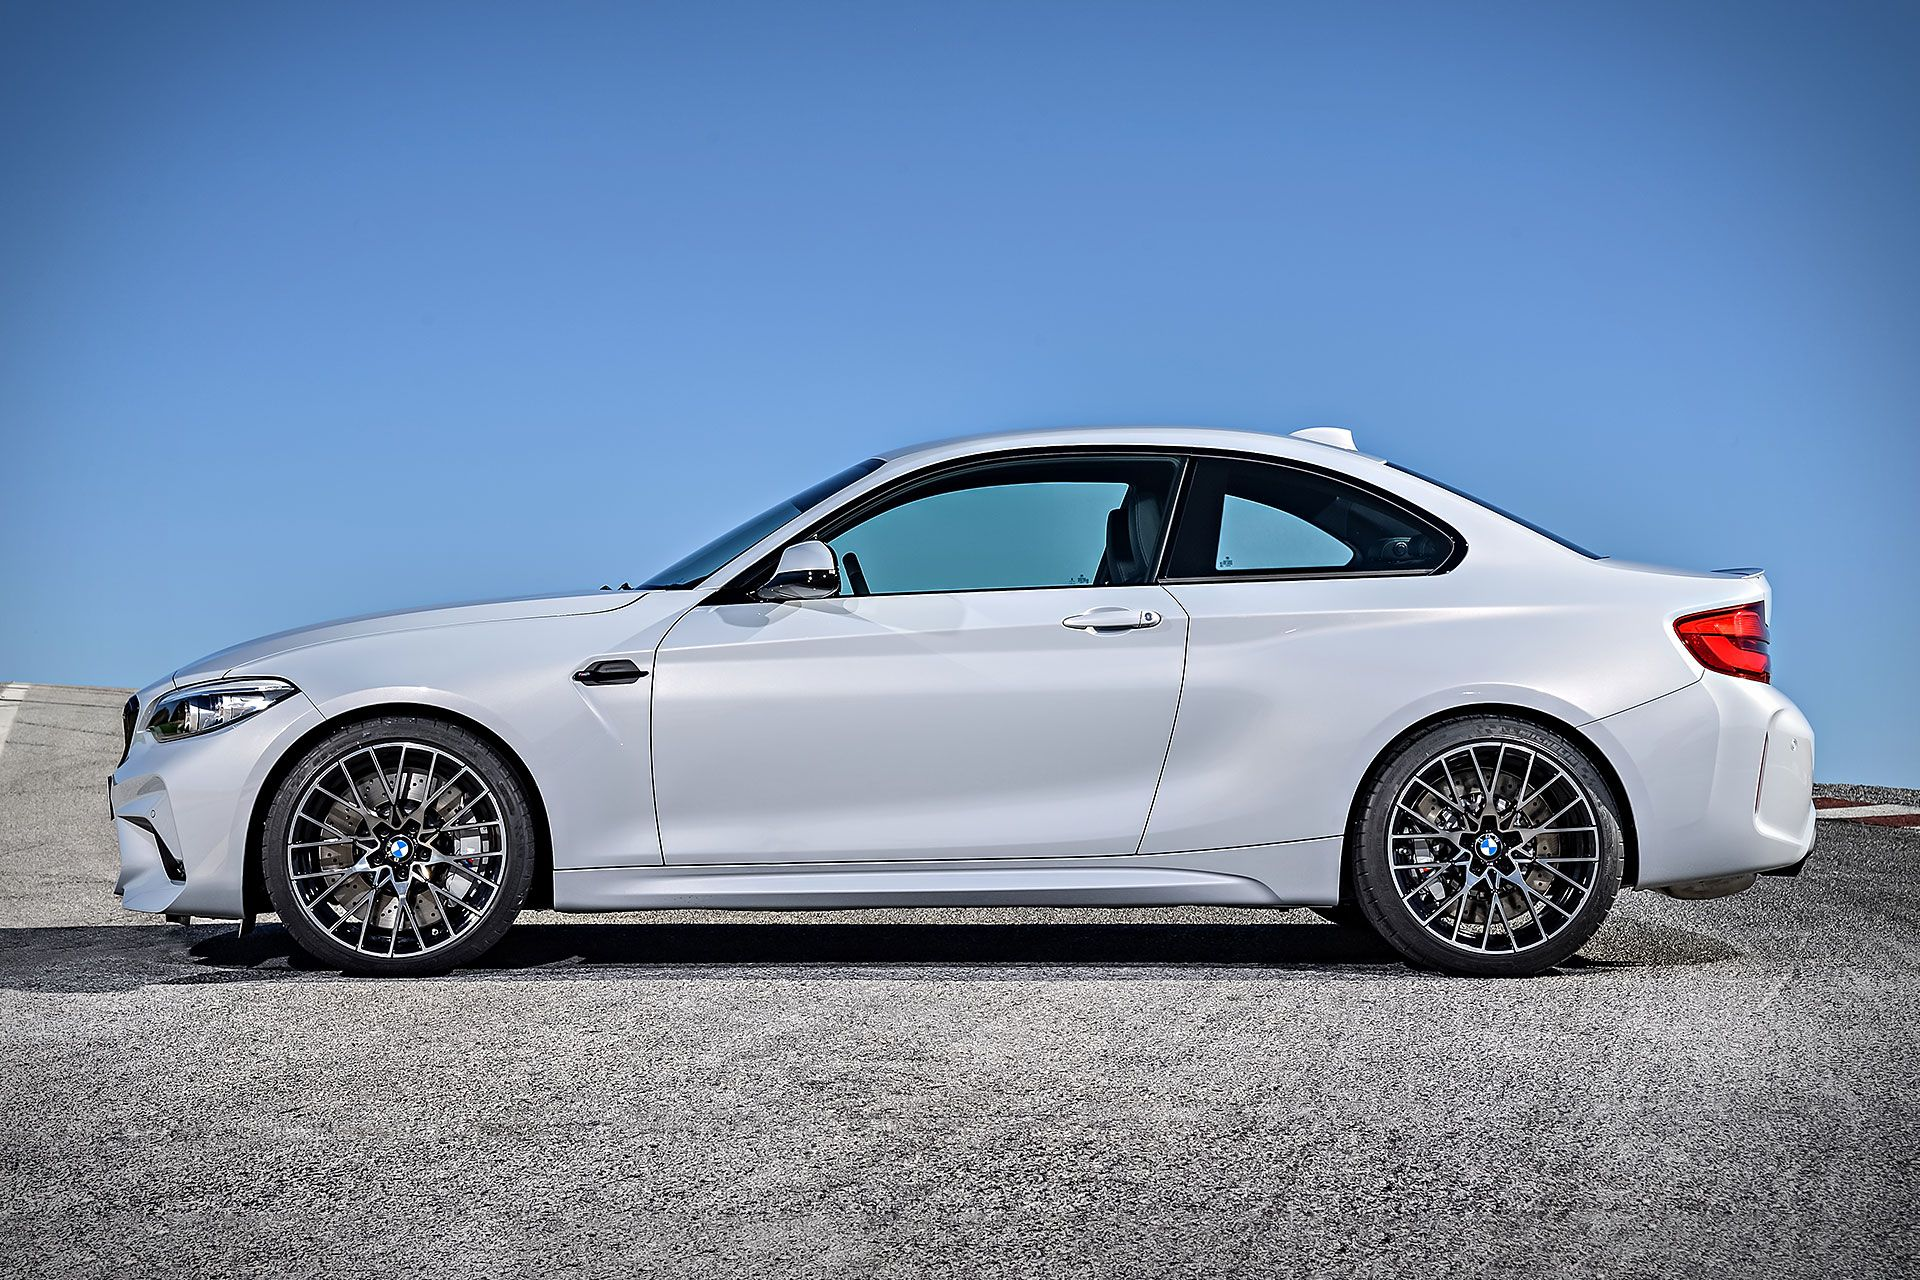 Bmw M2 Competition Coupe With Images Bmw M2 Bmw Bmw Classic Cars